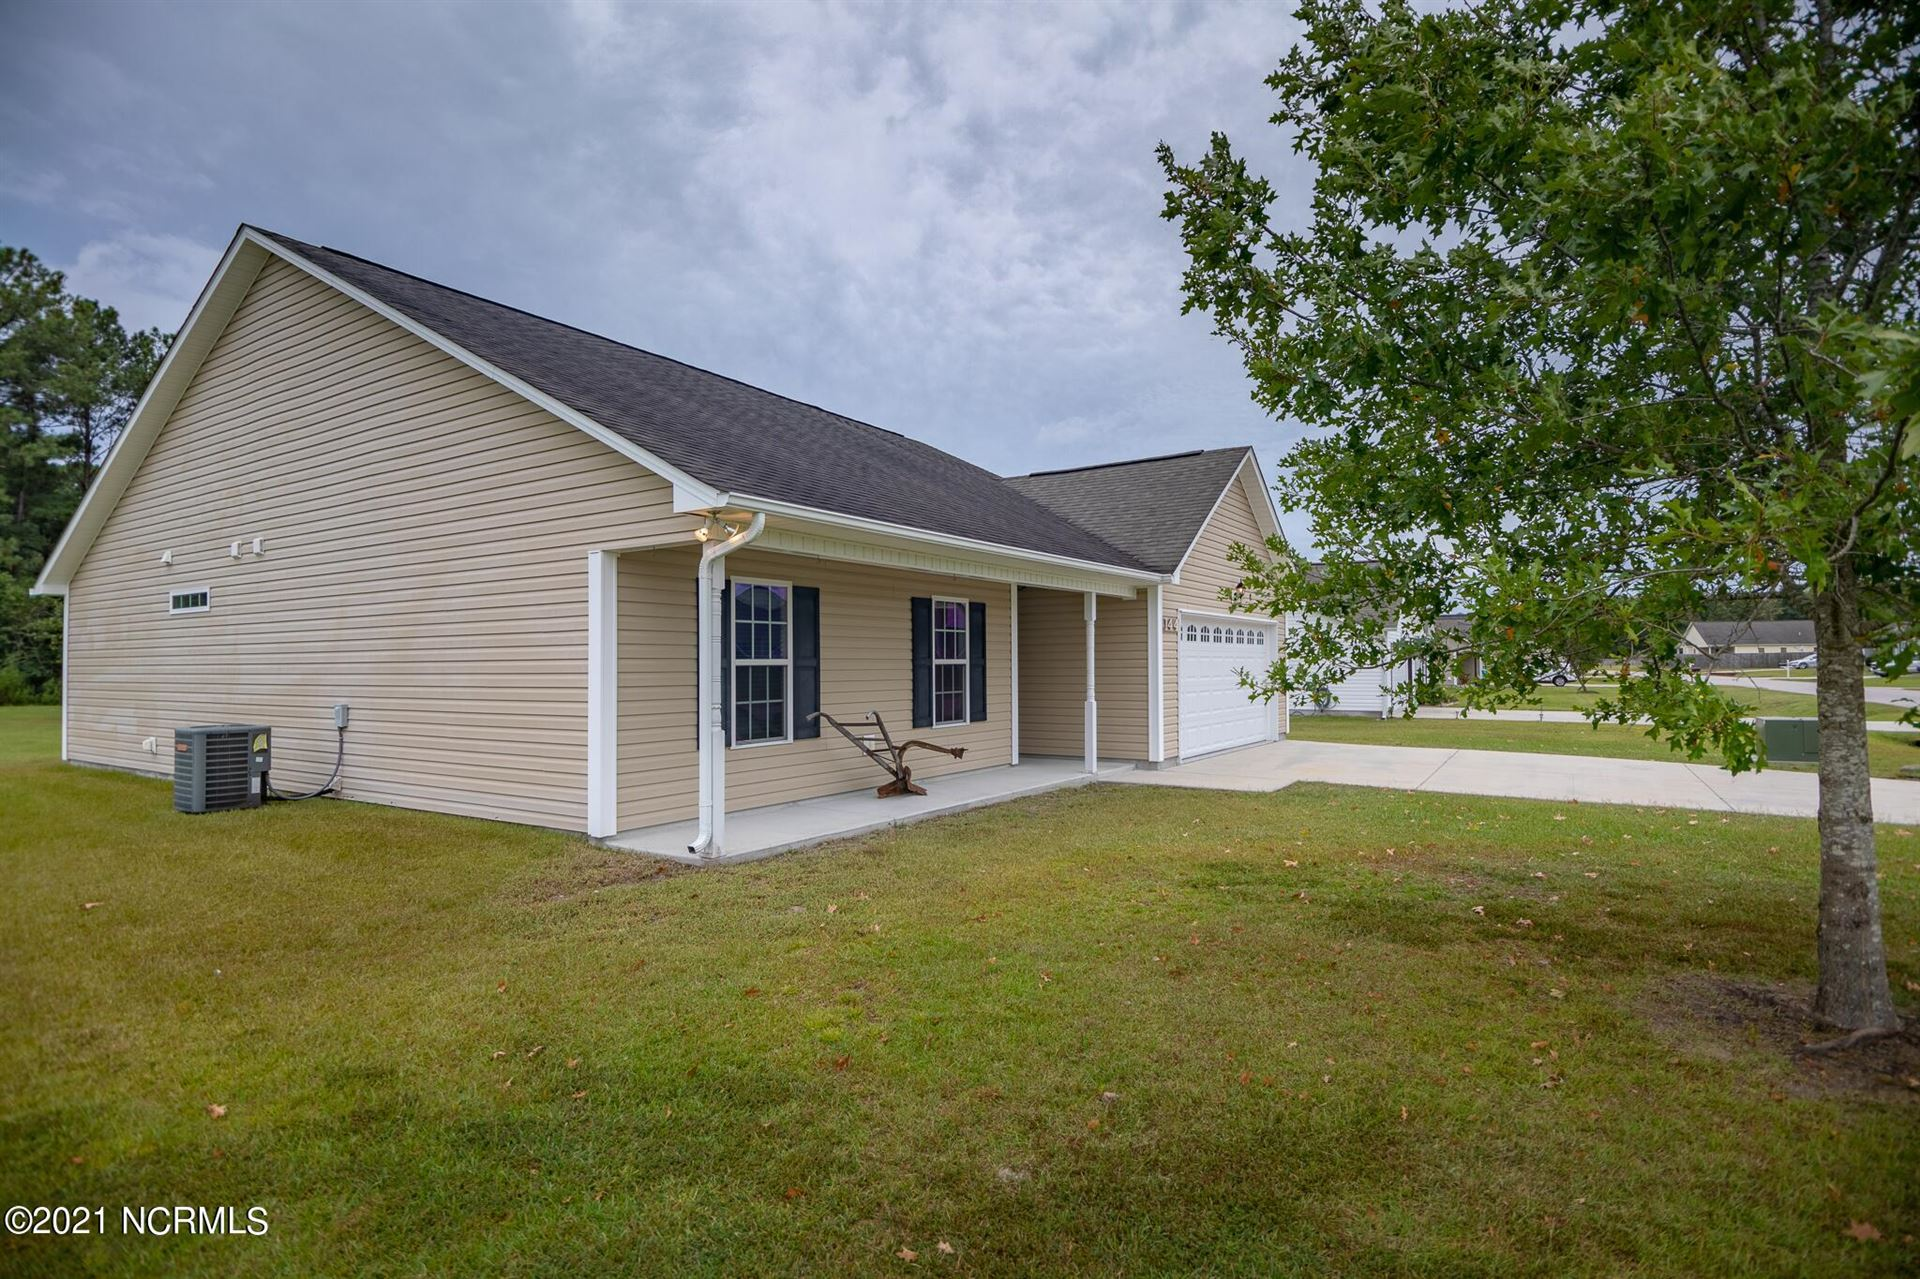 Photo of 144 Christy Drive, Beulaville, NC 28518 (MLS # 100291745)